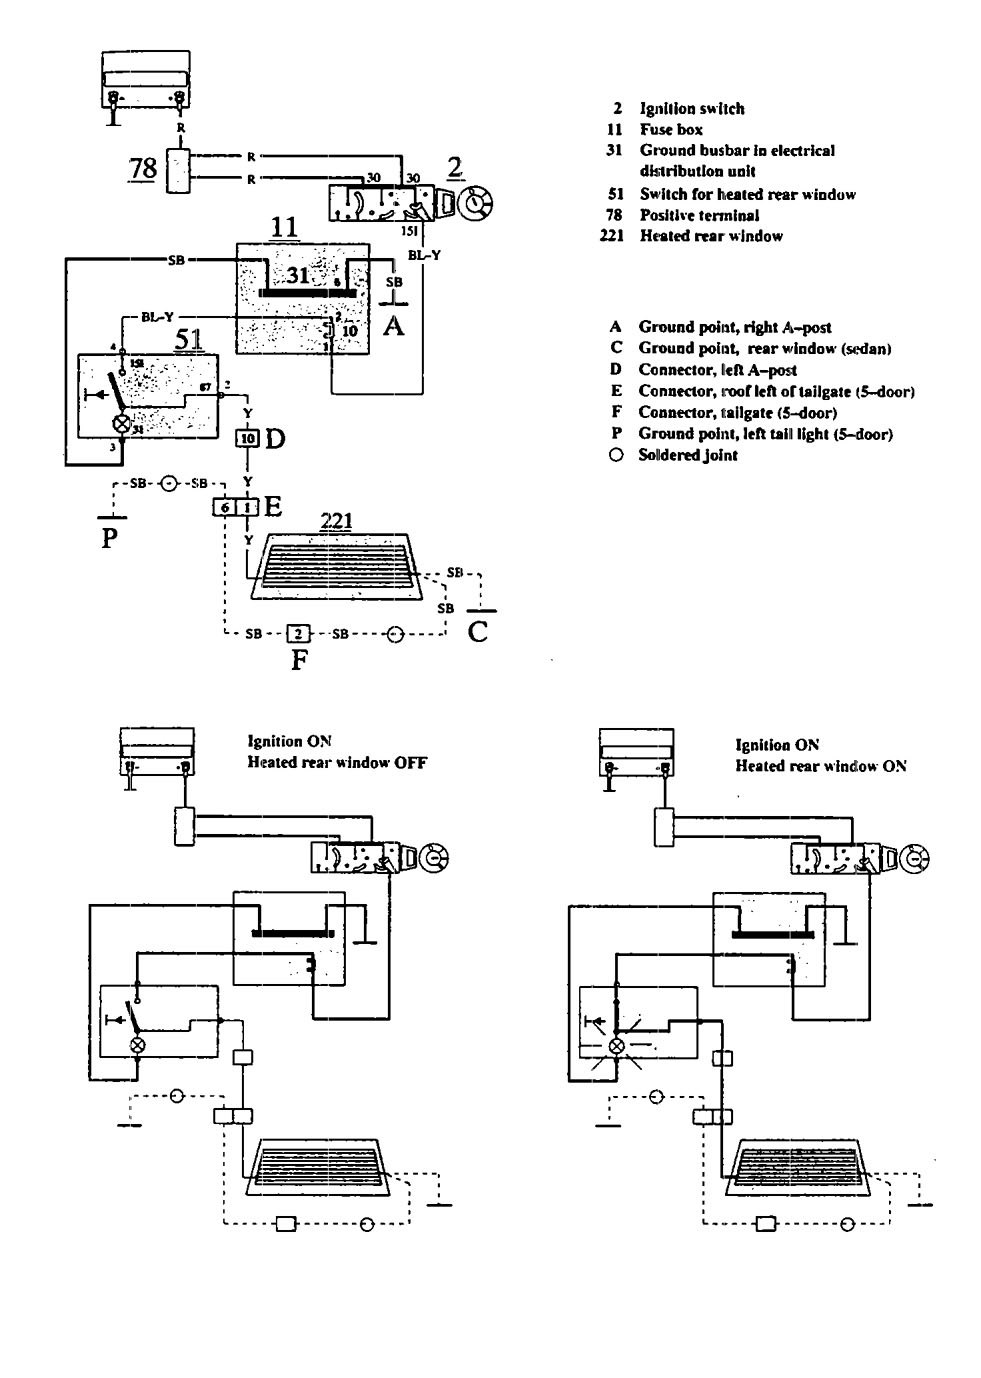 1991 Volvo Fuse Box Electrical Wiring Diagrams 1995 850 740 Stereo G20 Engine Diagram 1998 S70 940